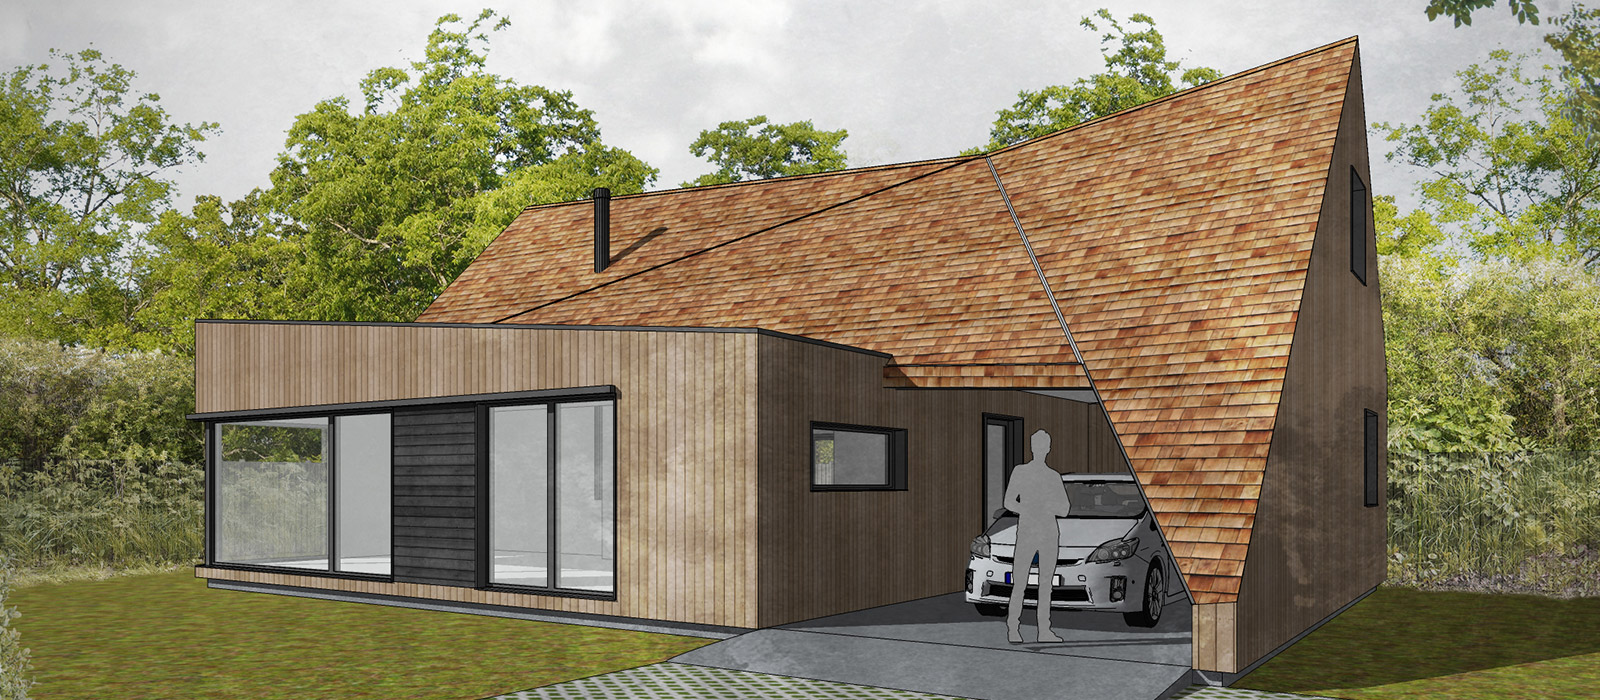 gyd architecture | 3D render of proposed timber framed house